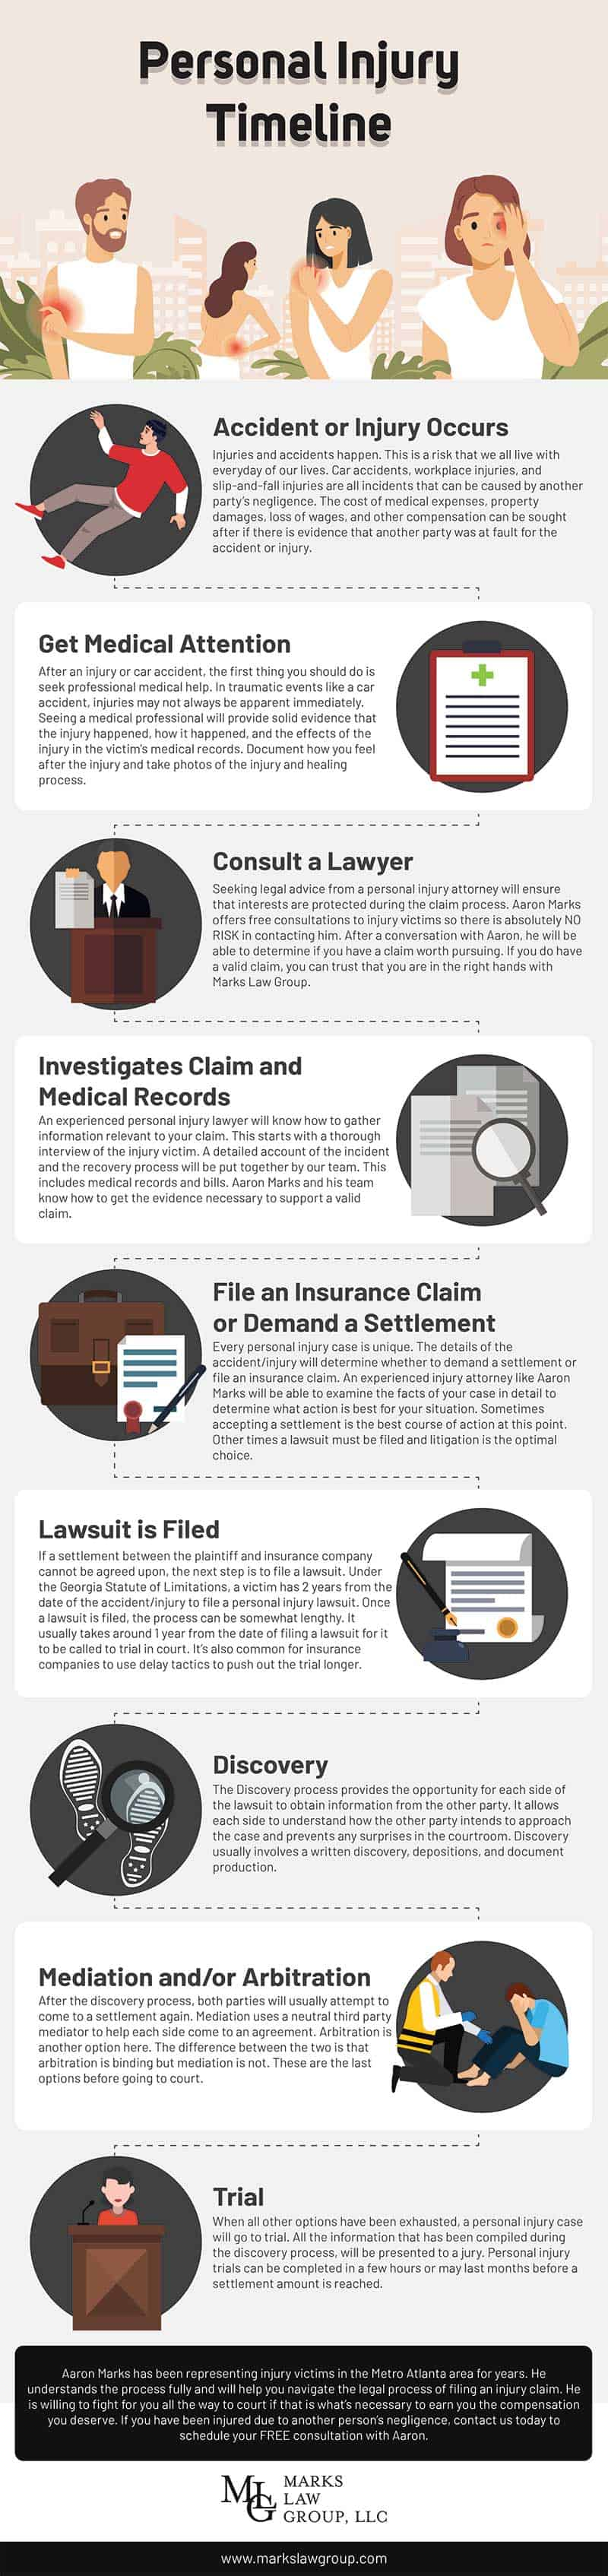 Personal Injury Claim Timeline - Infographic